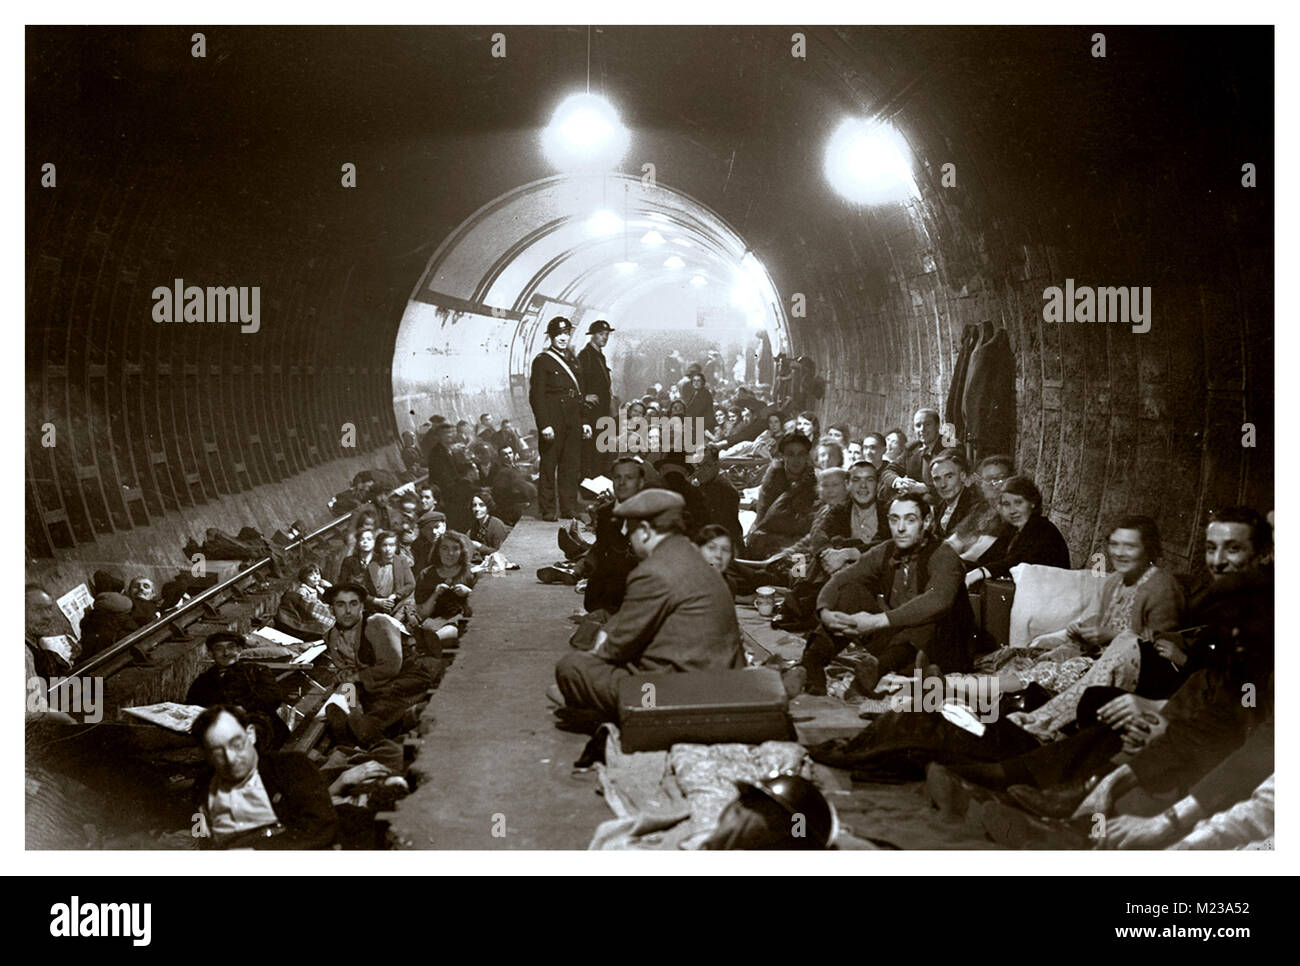 WW2 1940's London Blitz.. Tube station acting as a safe haven for London residents against sustained terror - Stock Image